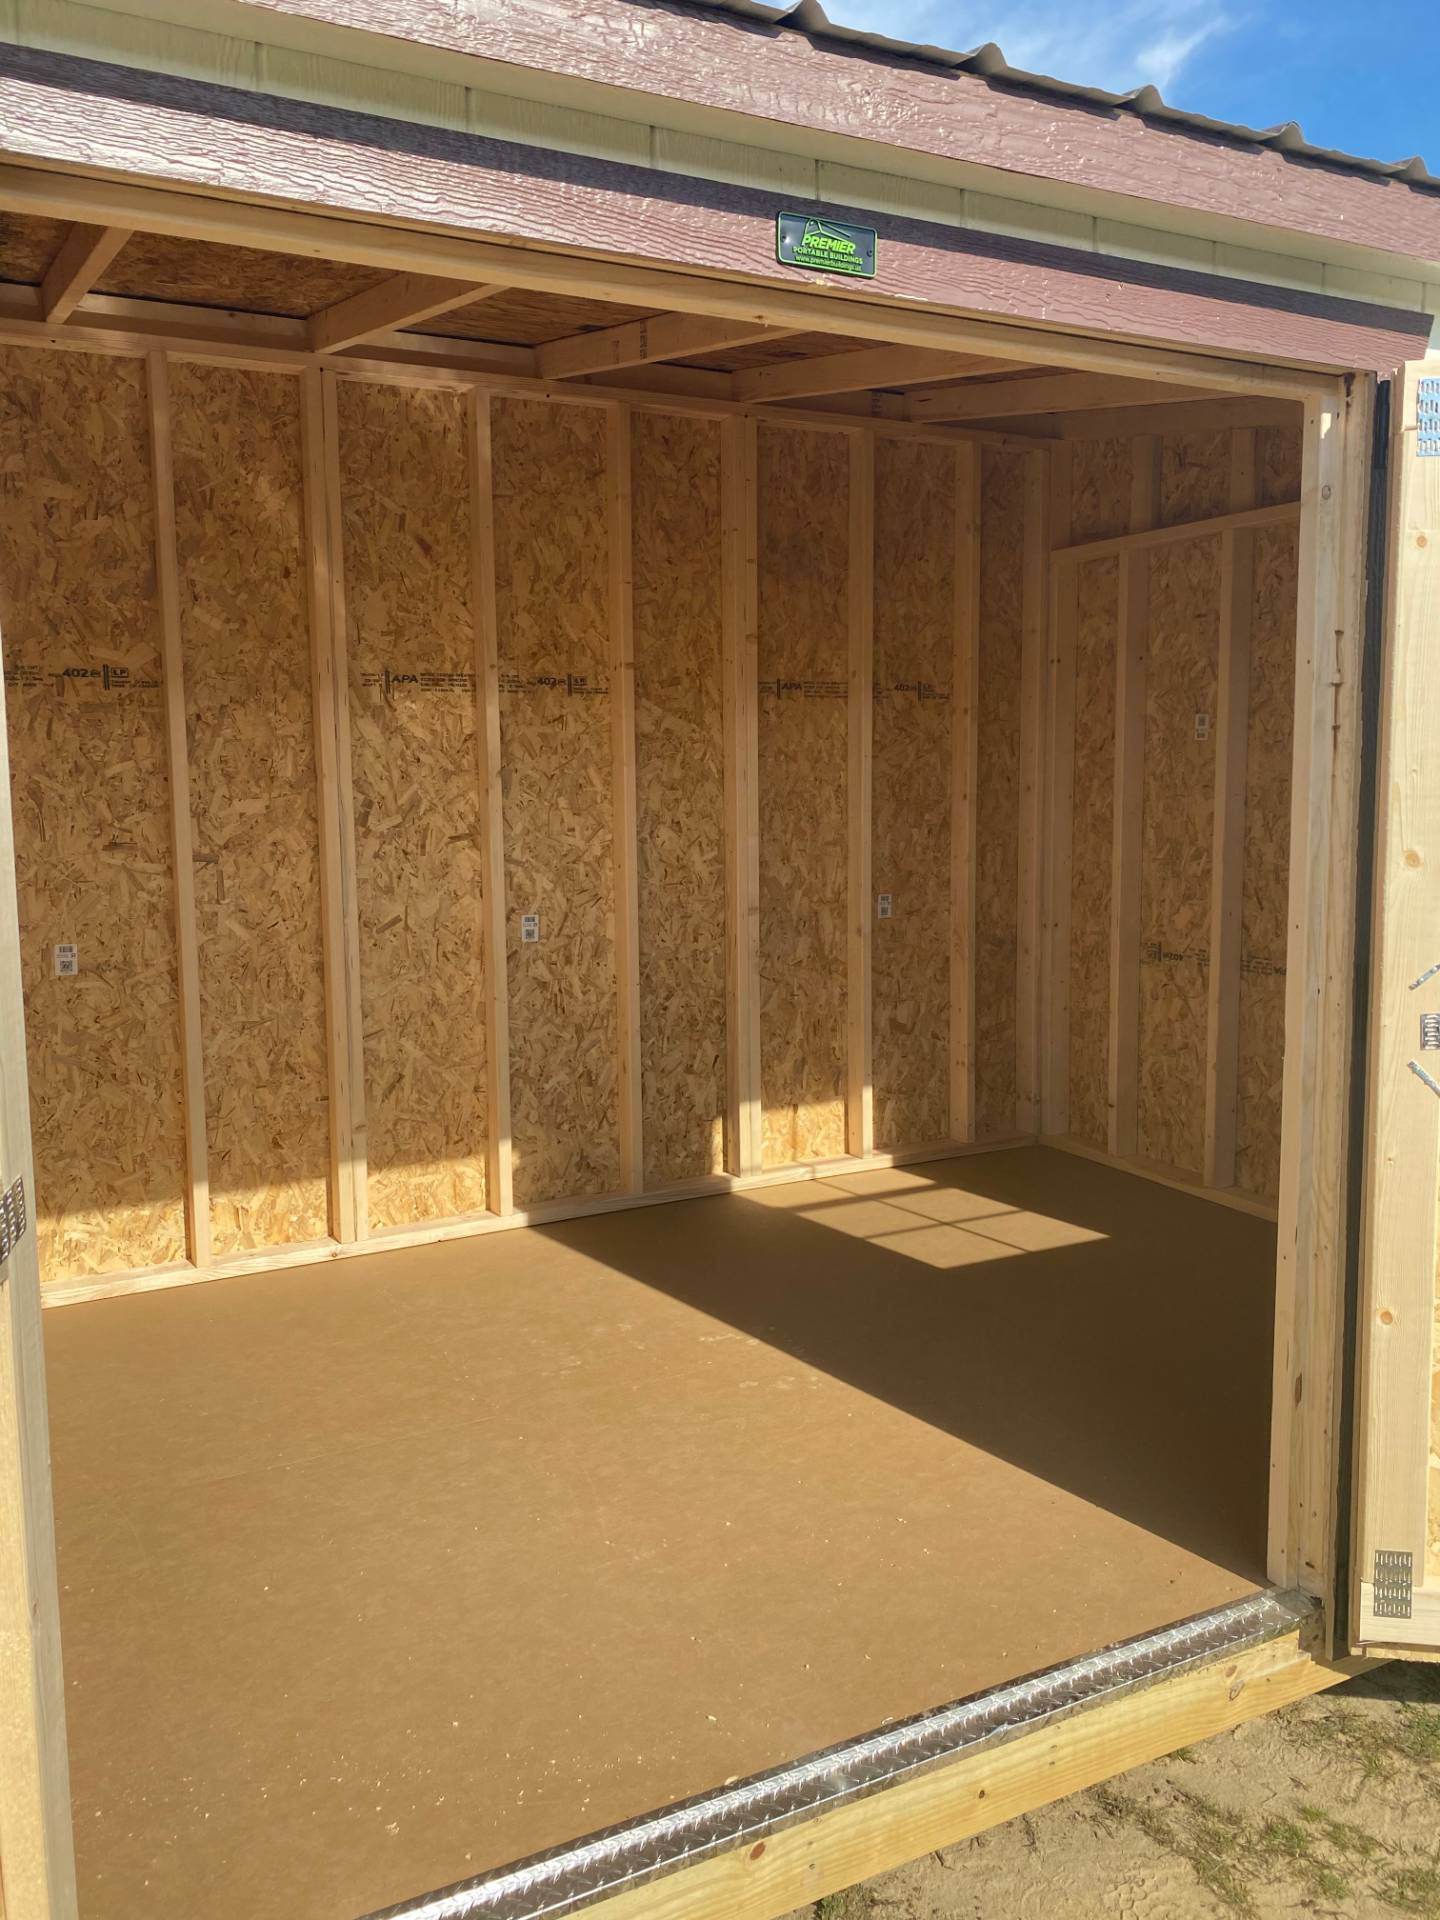 2019 PREMIER PORTABLE BUILDINGS UPGS-PREMIER GARDEN SHED in Tifton, Georgia - Photo 2